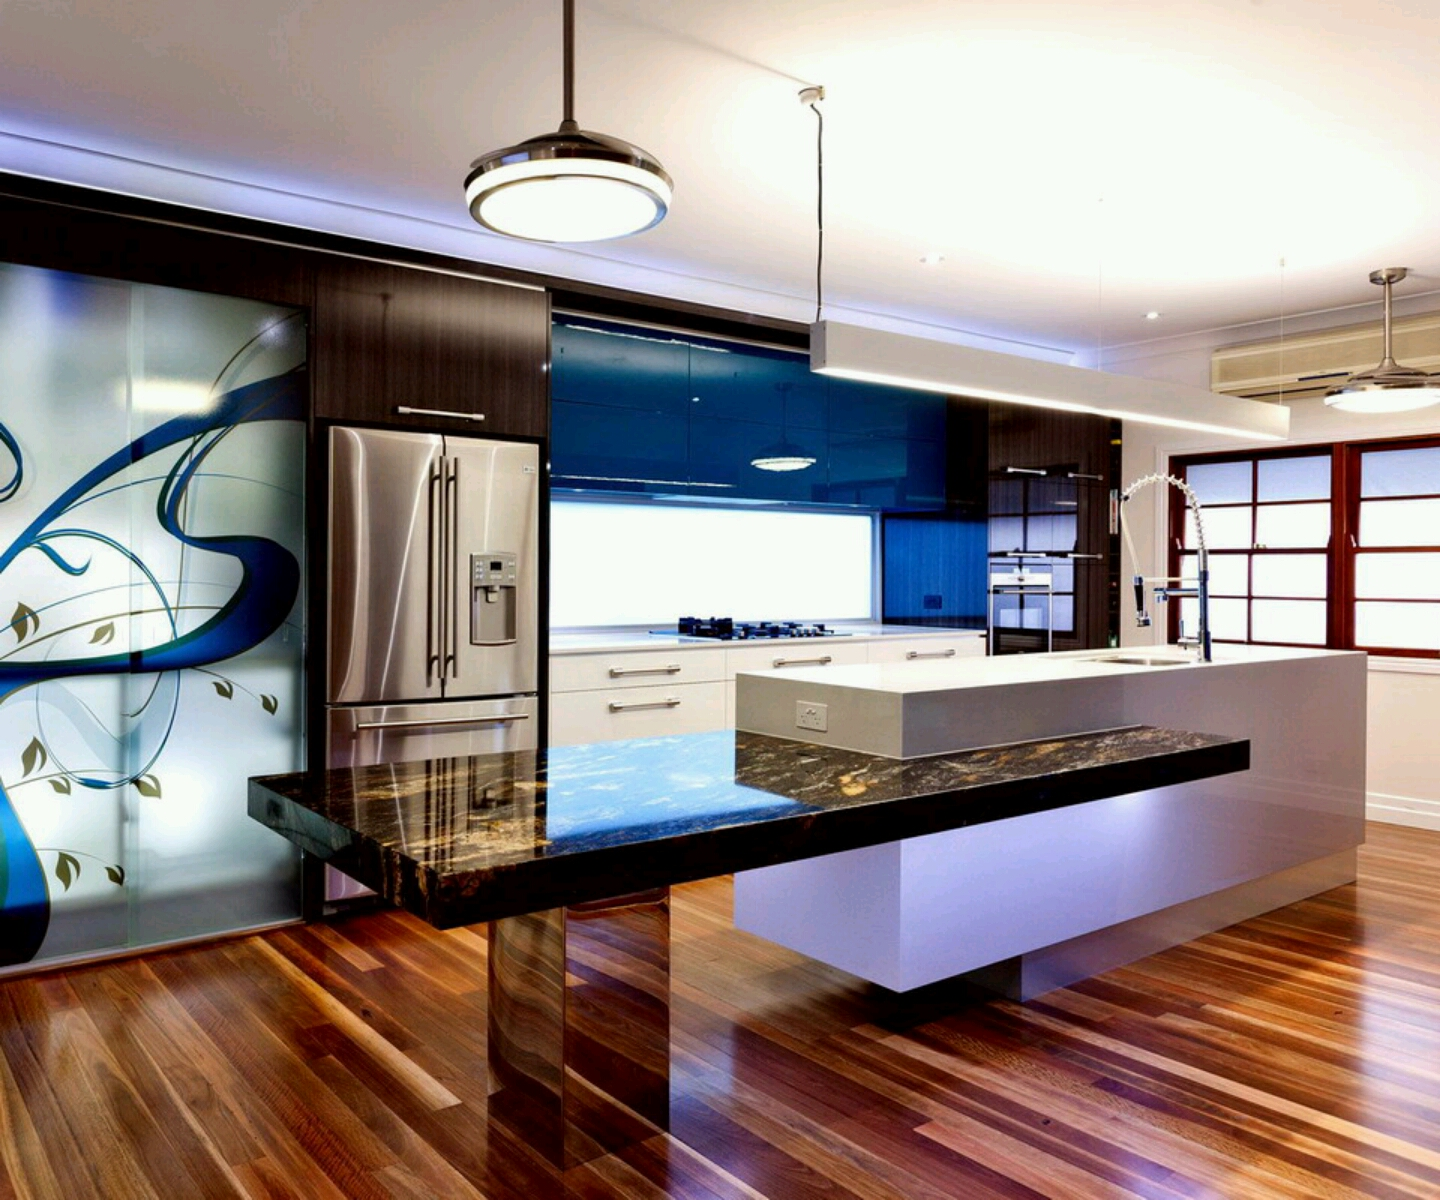 Ultra modern kitchen designs ideas new home designs for Kitchen interior design pictures